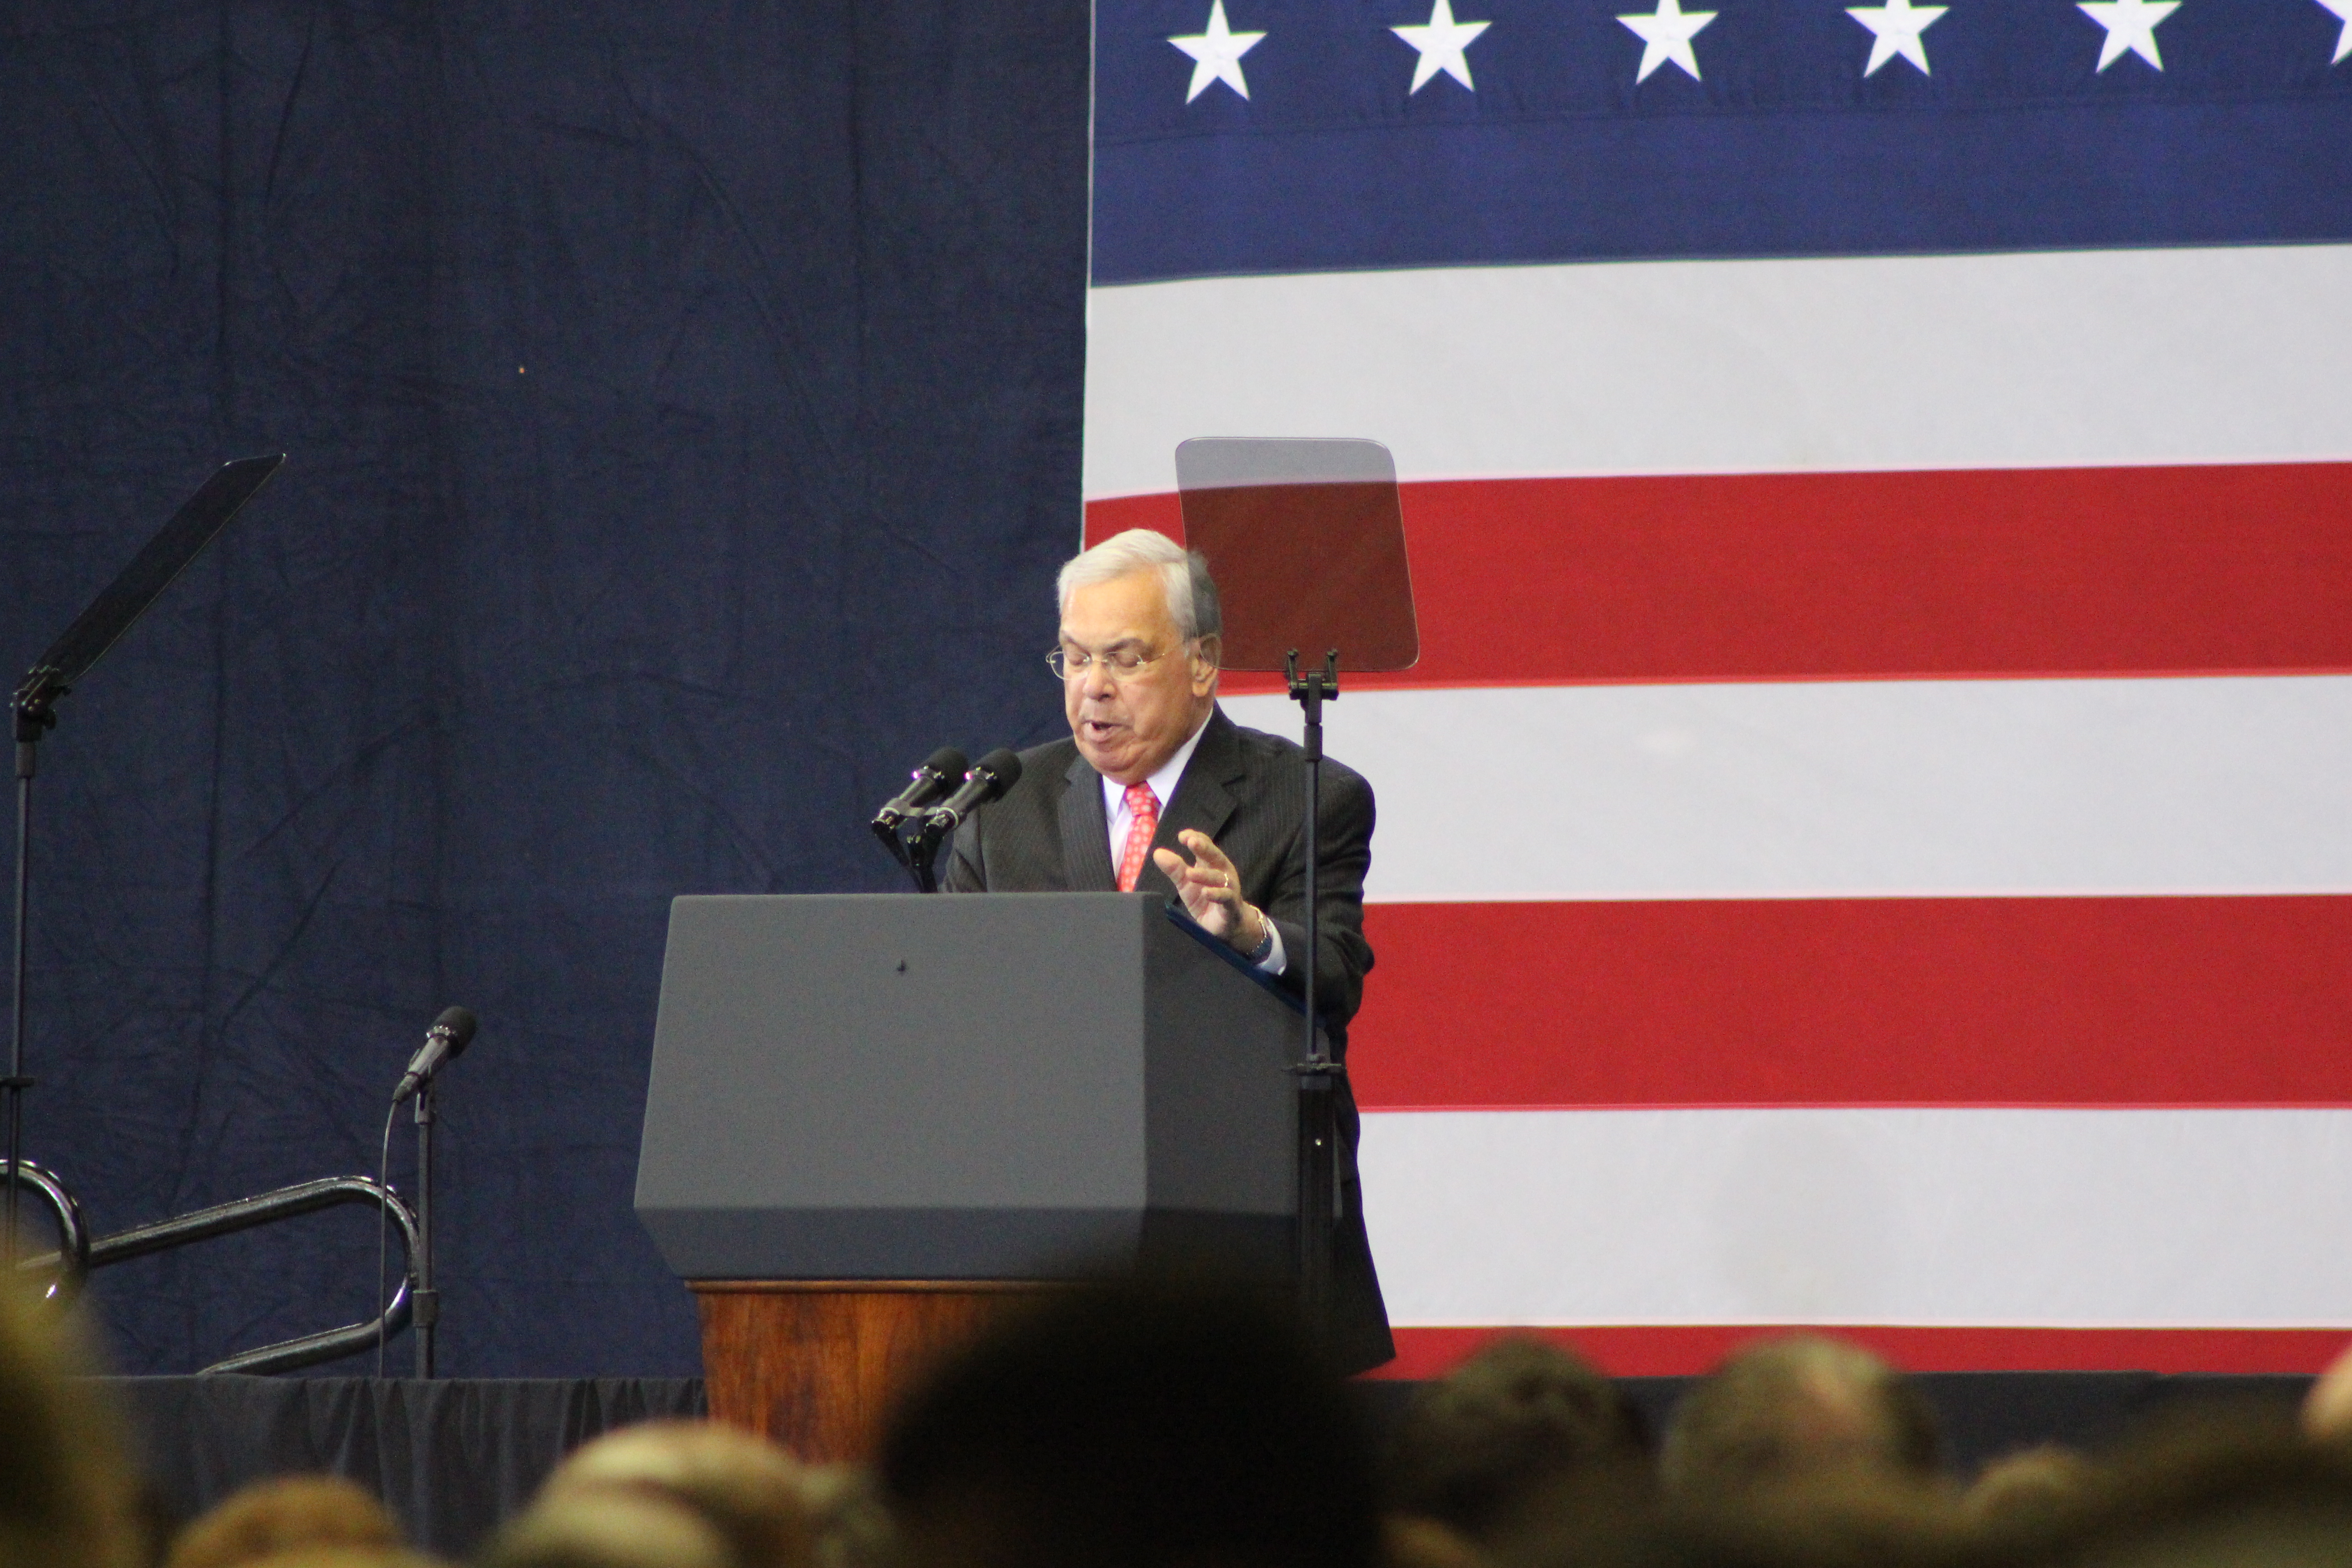 File Thomas Menino at the Reggie Lewis Center JPG Wikimedia mons